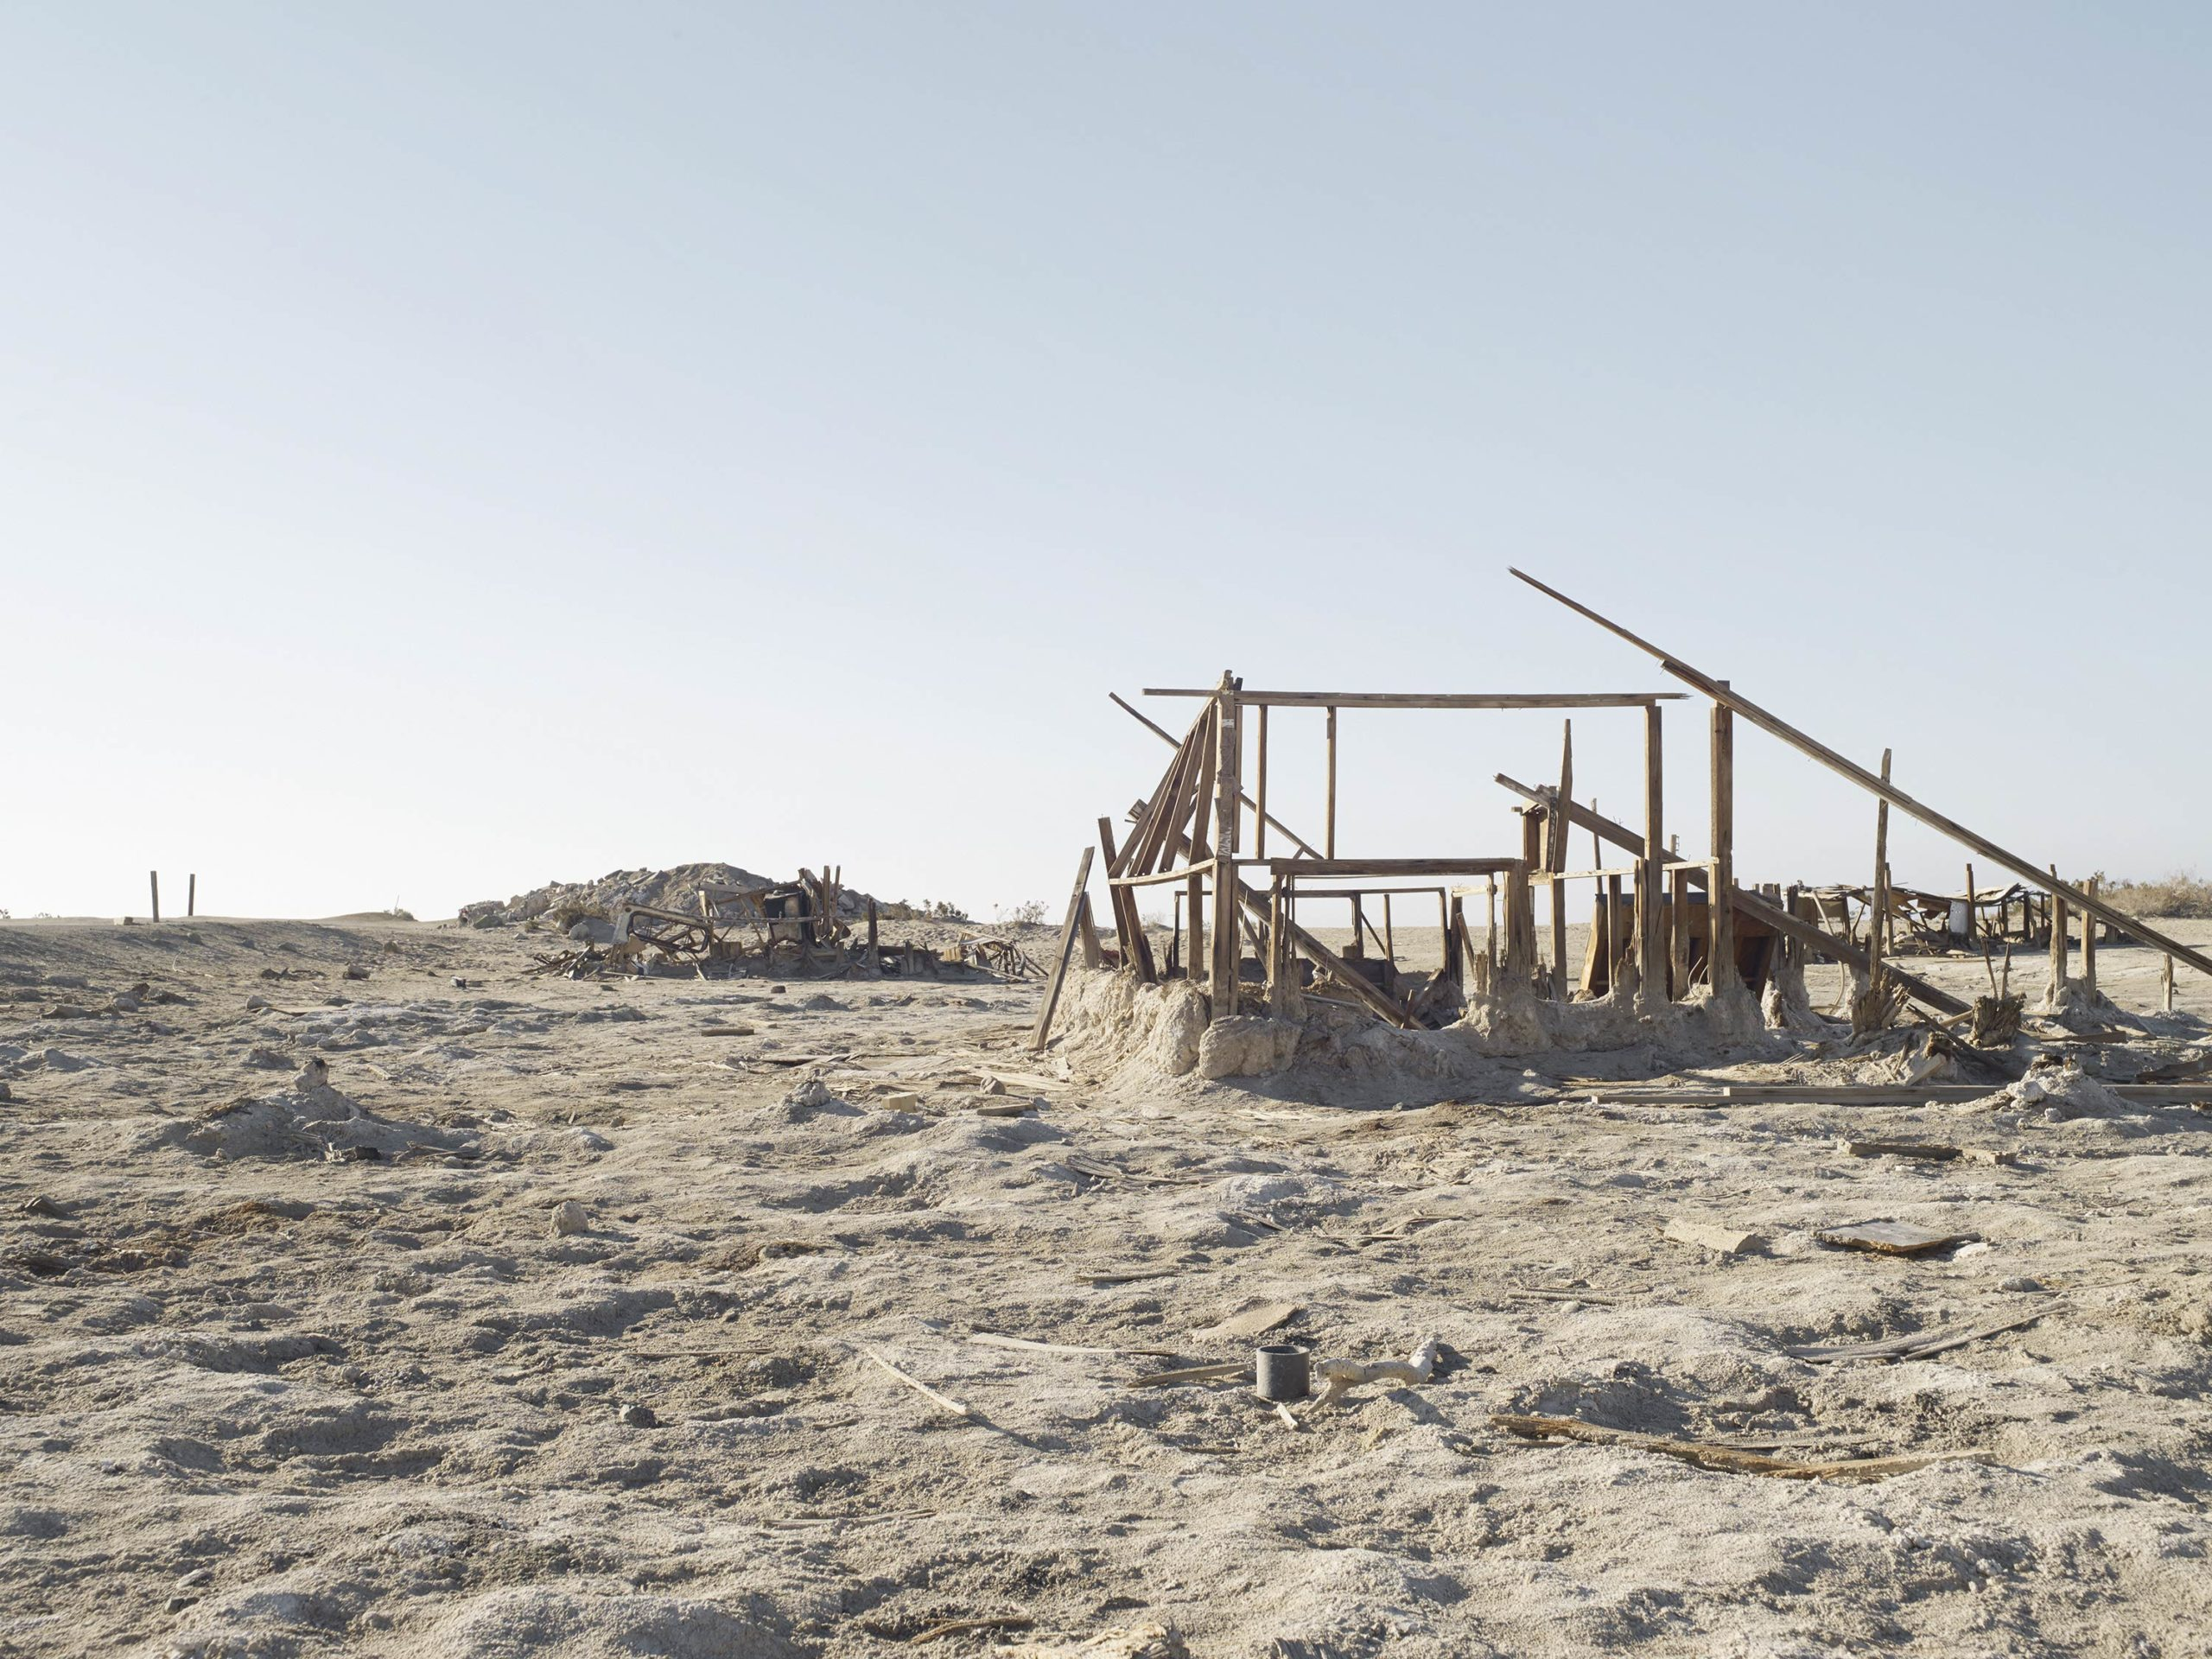 Bleach - Welcome To Bombay Beach Collection - Fine Art Photography by Toby Dixon